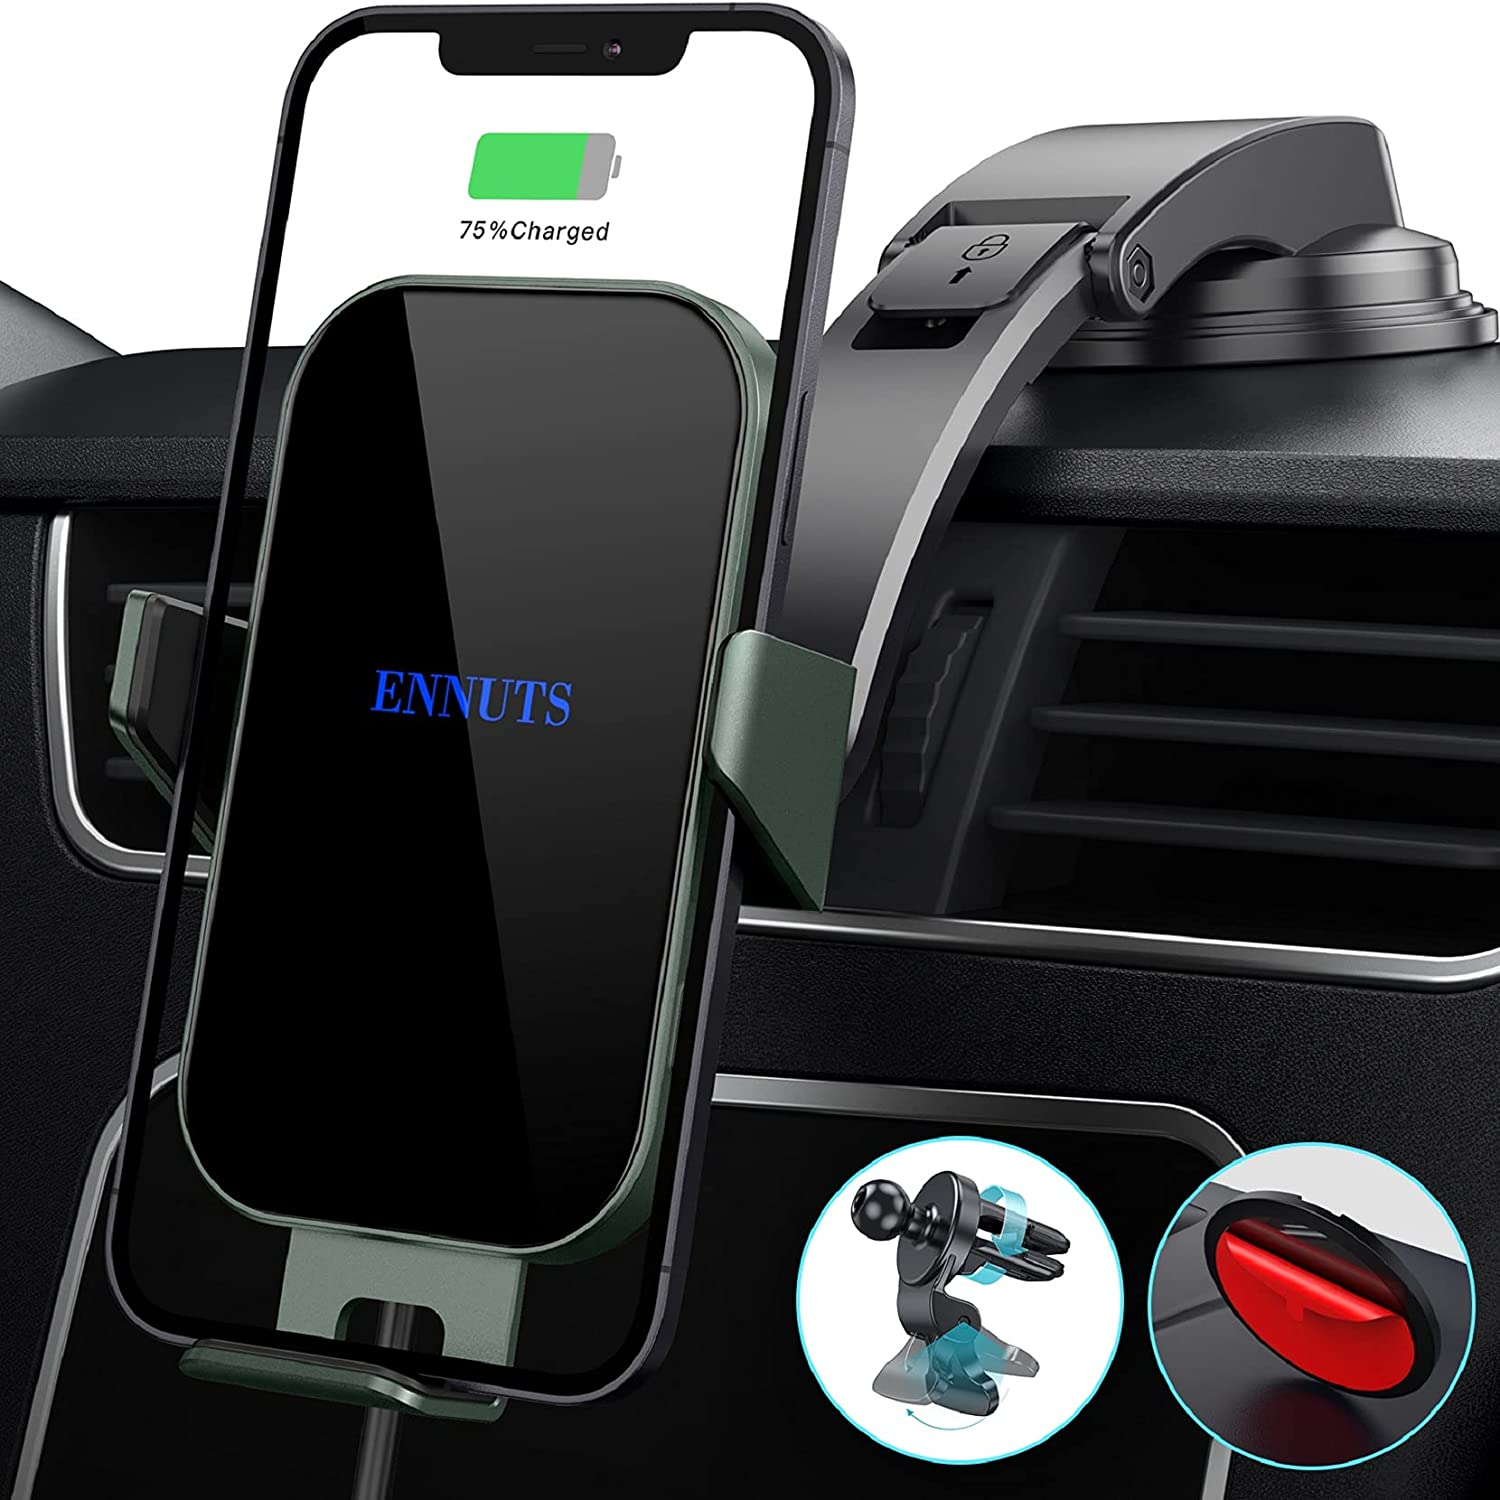 15W Metal Frame Wireless Car Charger Ennuts Auto-Clamping Qi Fast Charge Wireless Car Charger Mount Dashboard Air Vent Phone Holder Compatible for iPhone 12/12 Pro Max/11/XS/8, Samsung S21/20/S10